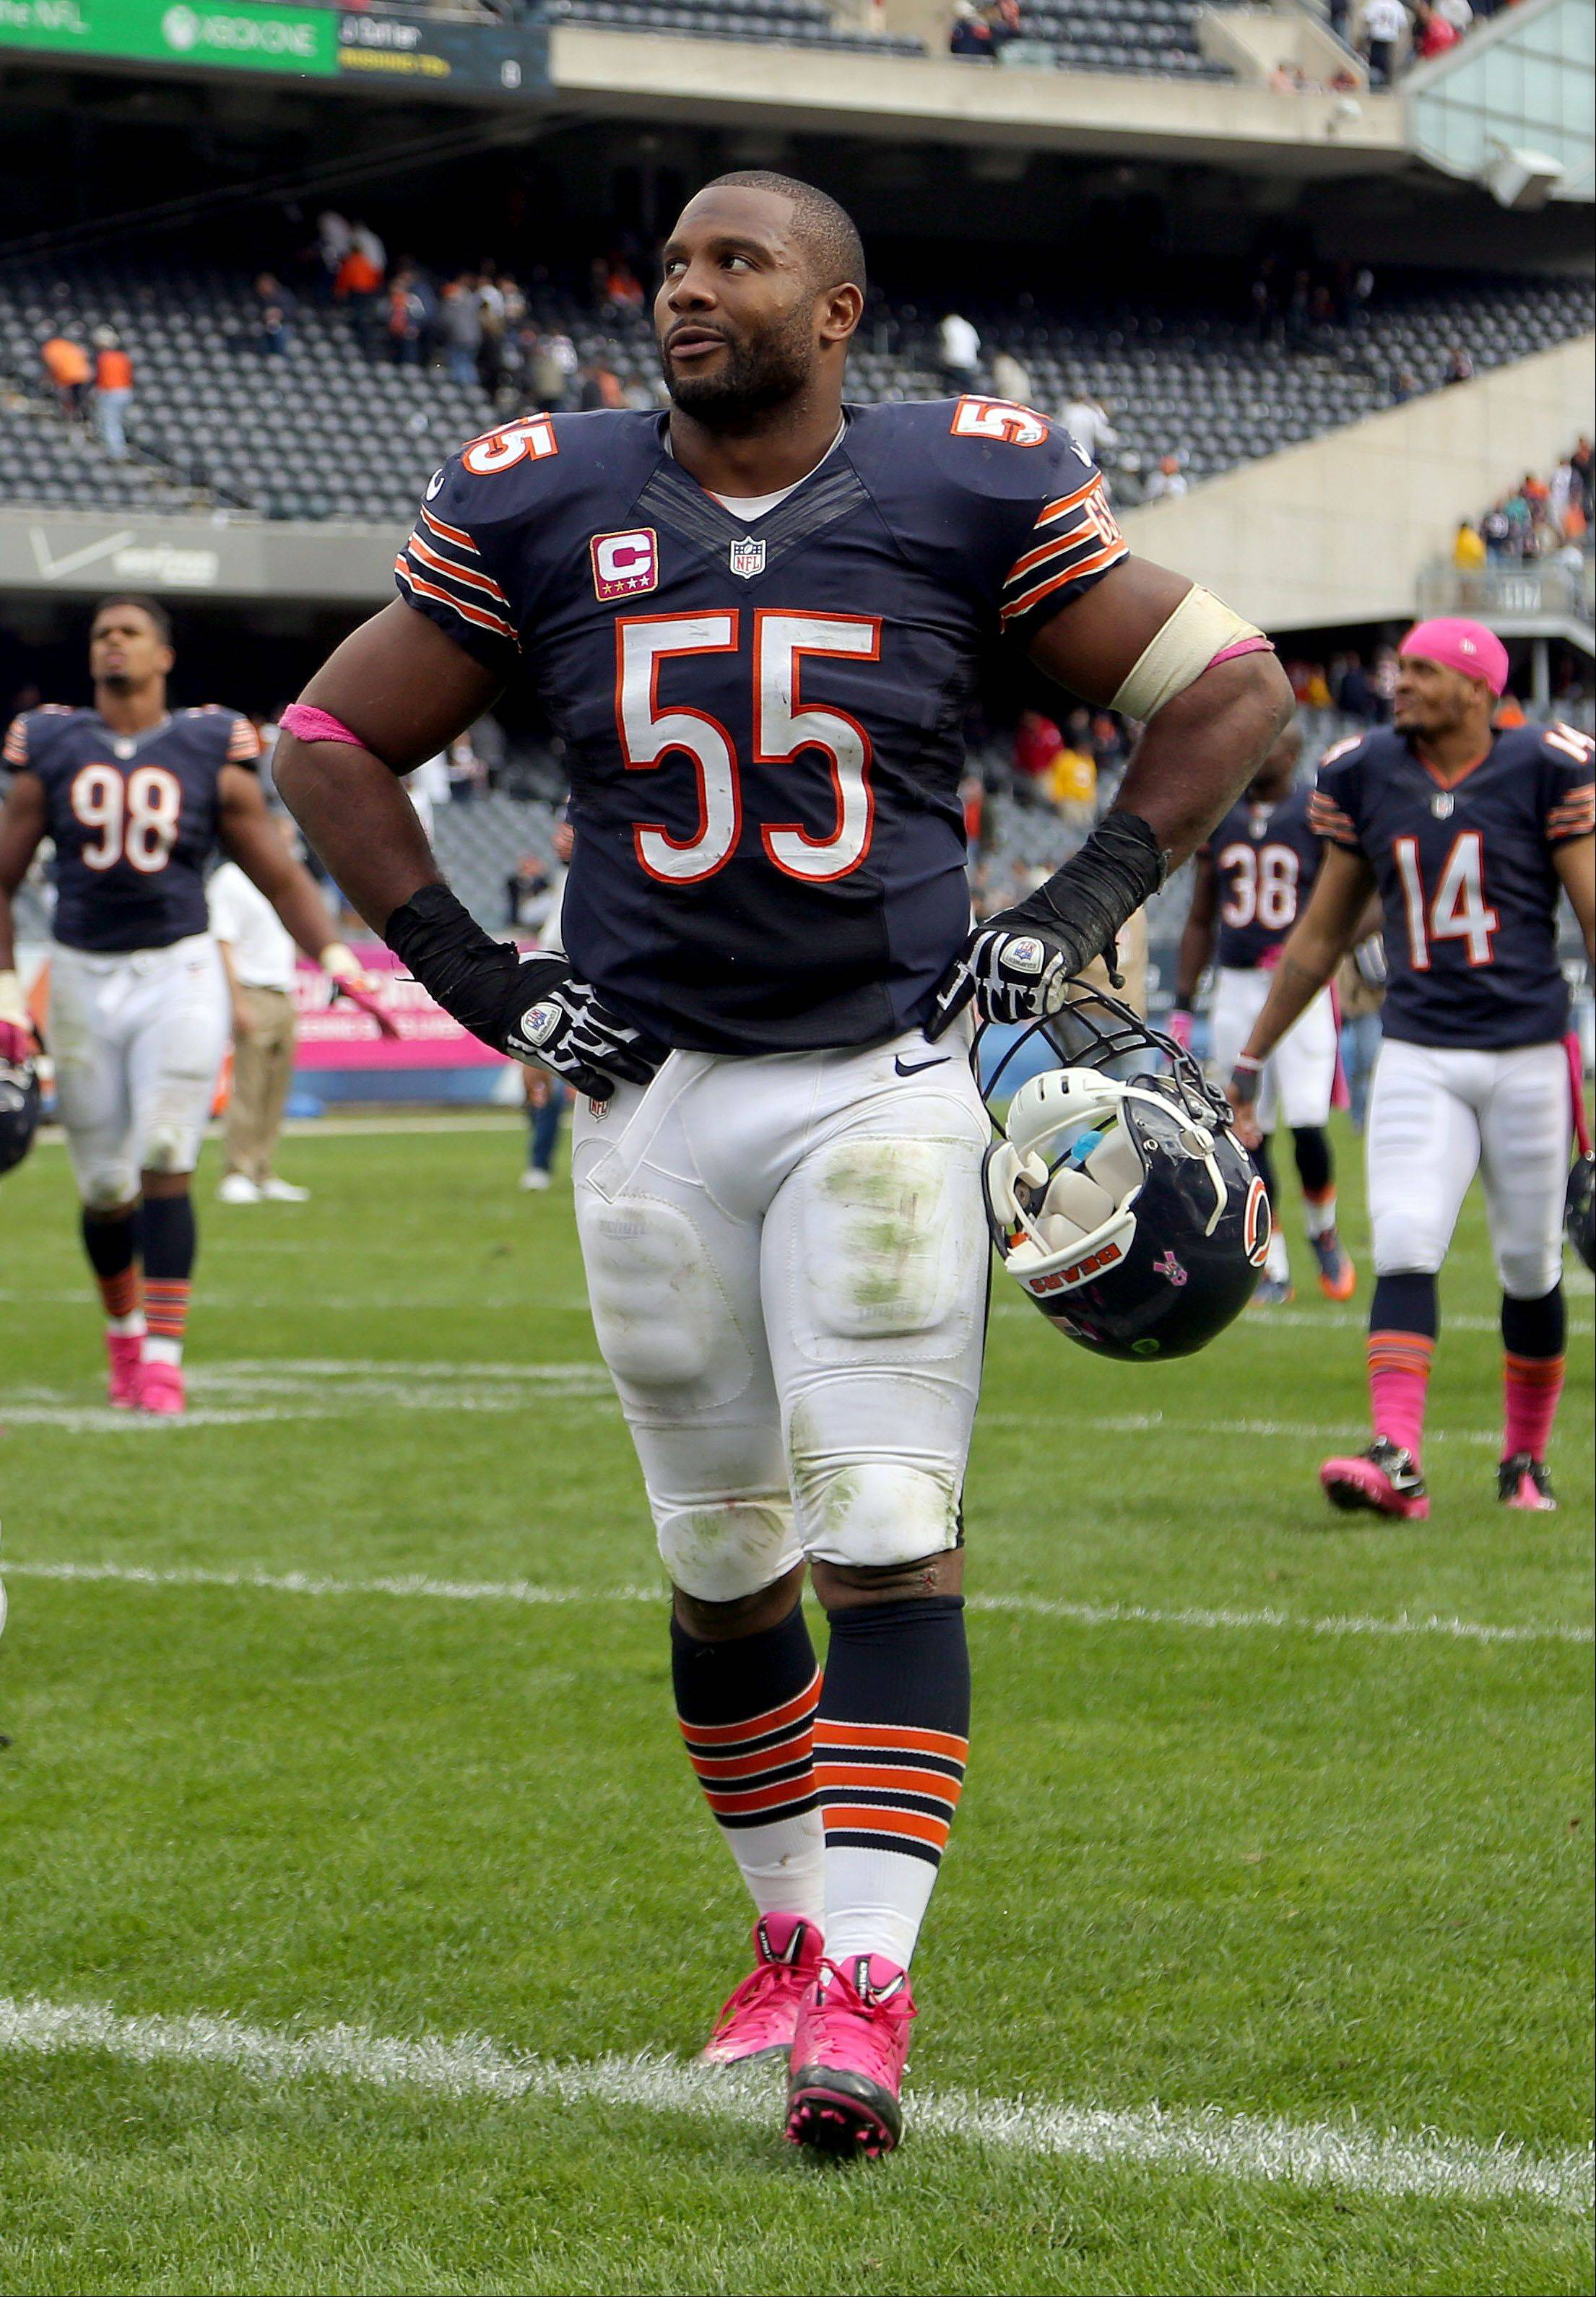 Bears linebacker Lance Briggs has been medically cleared to play Sunday night in Philadelphia against the Eagles.